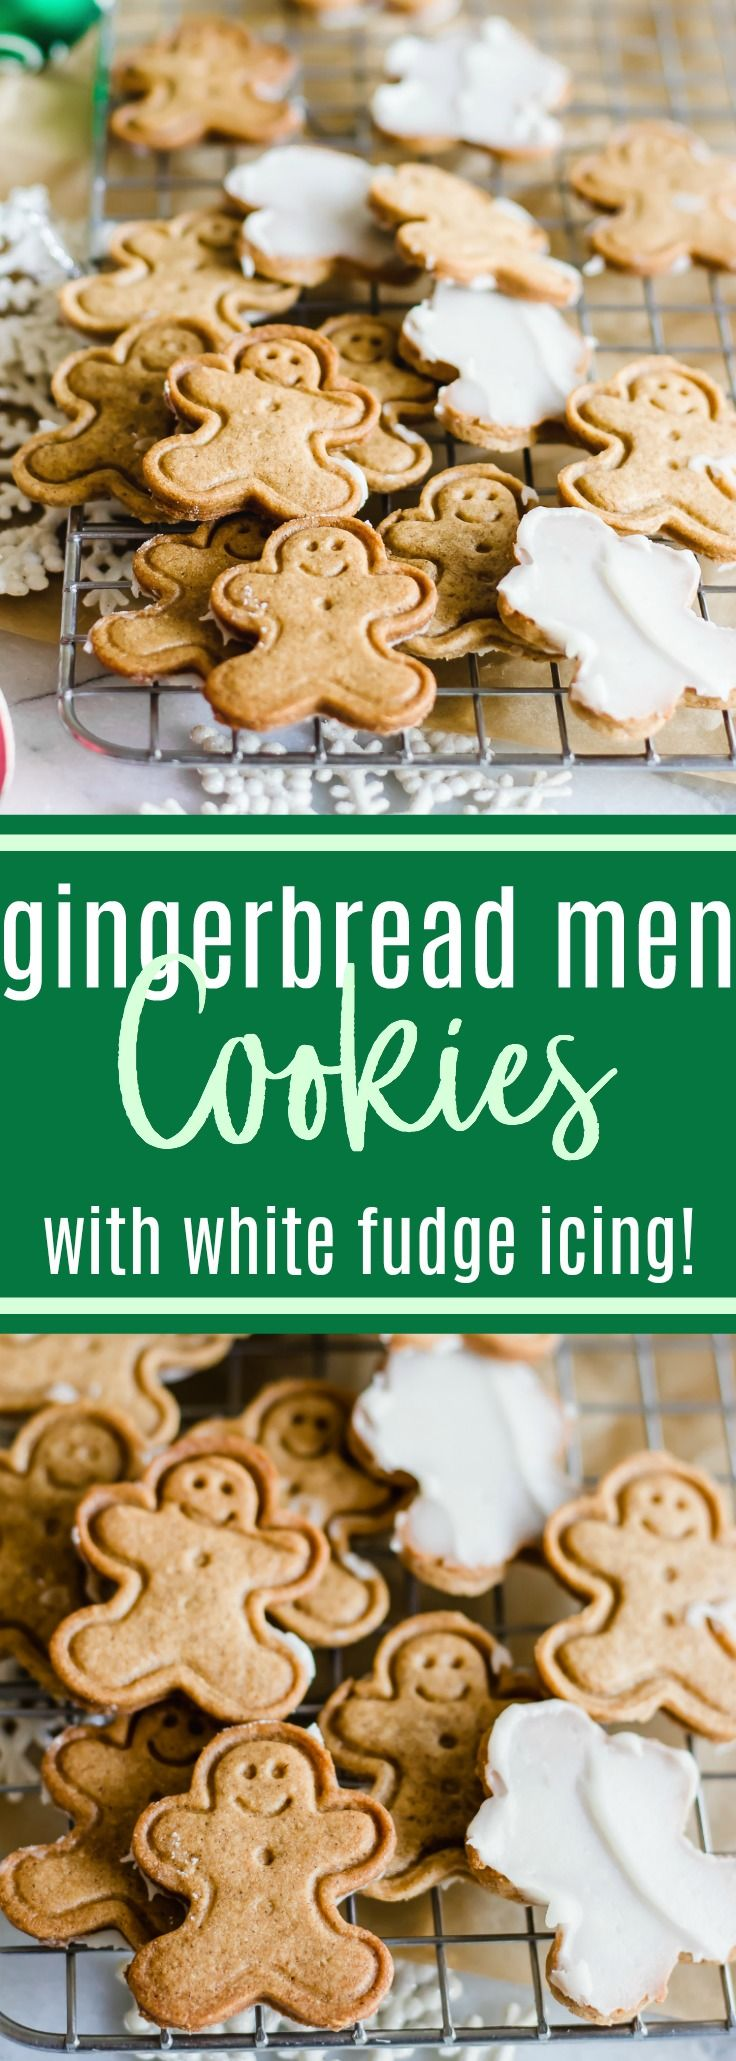 Gingerbread Men Cookies with White Fudge Icing. These little gingerbread men cookies are soft and crisp, perfectly sweet and spiced with cinnamon and ginger. The finishing touch is the white fudge icing on the back! A homemade take on a market favorite! #gingerbread #cookies #christmascookies #christmas #dessert